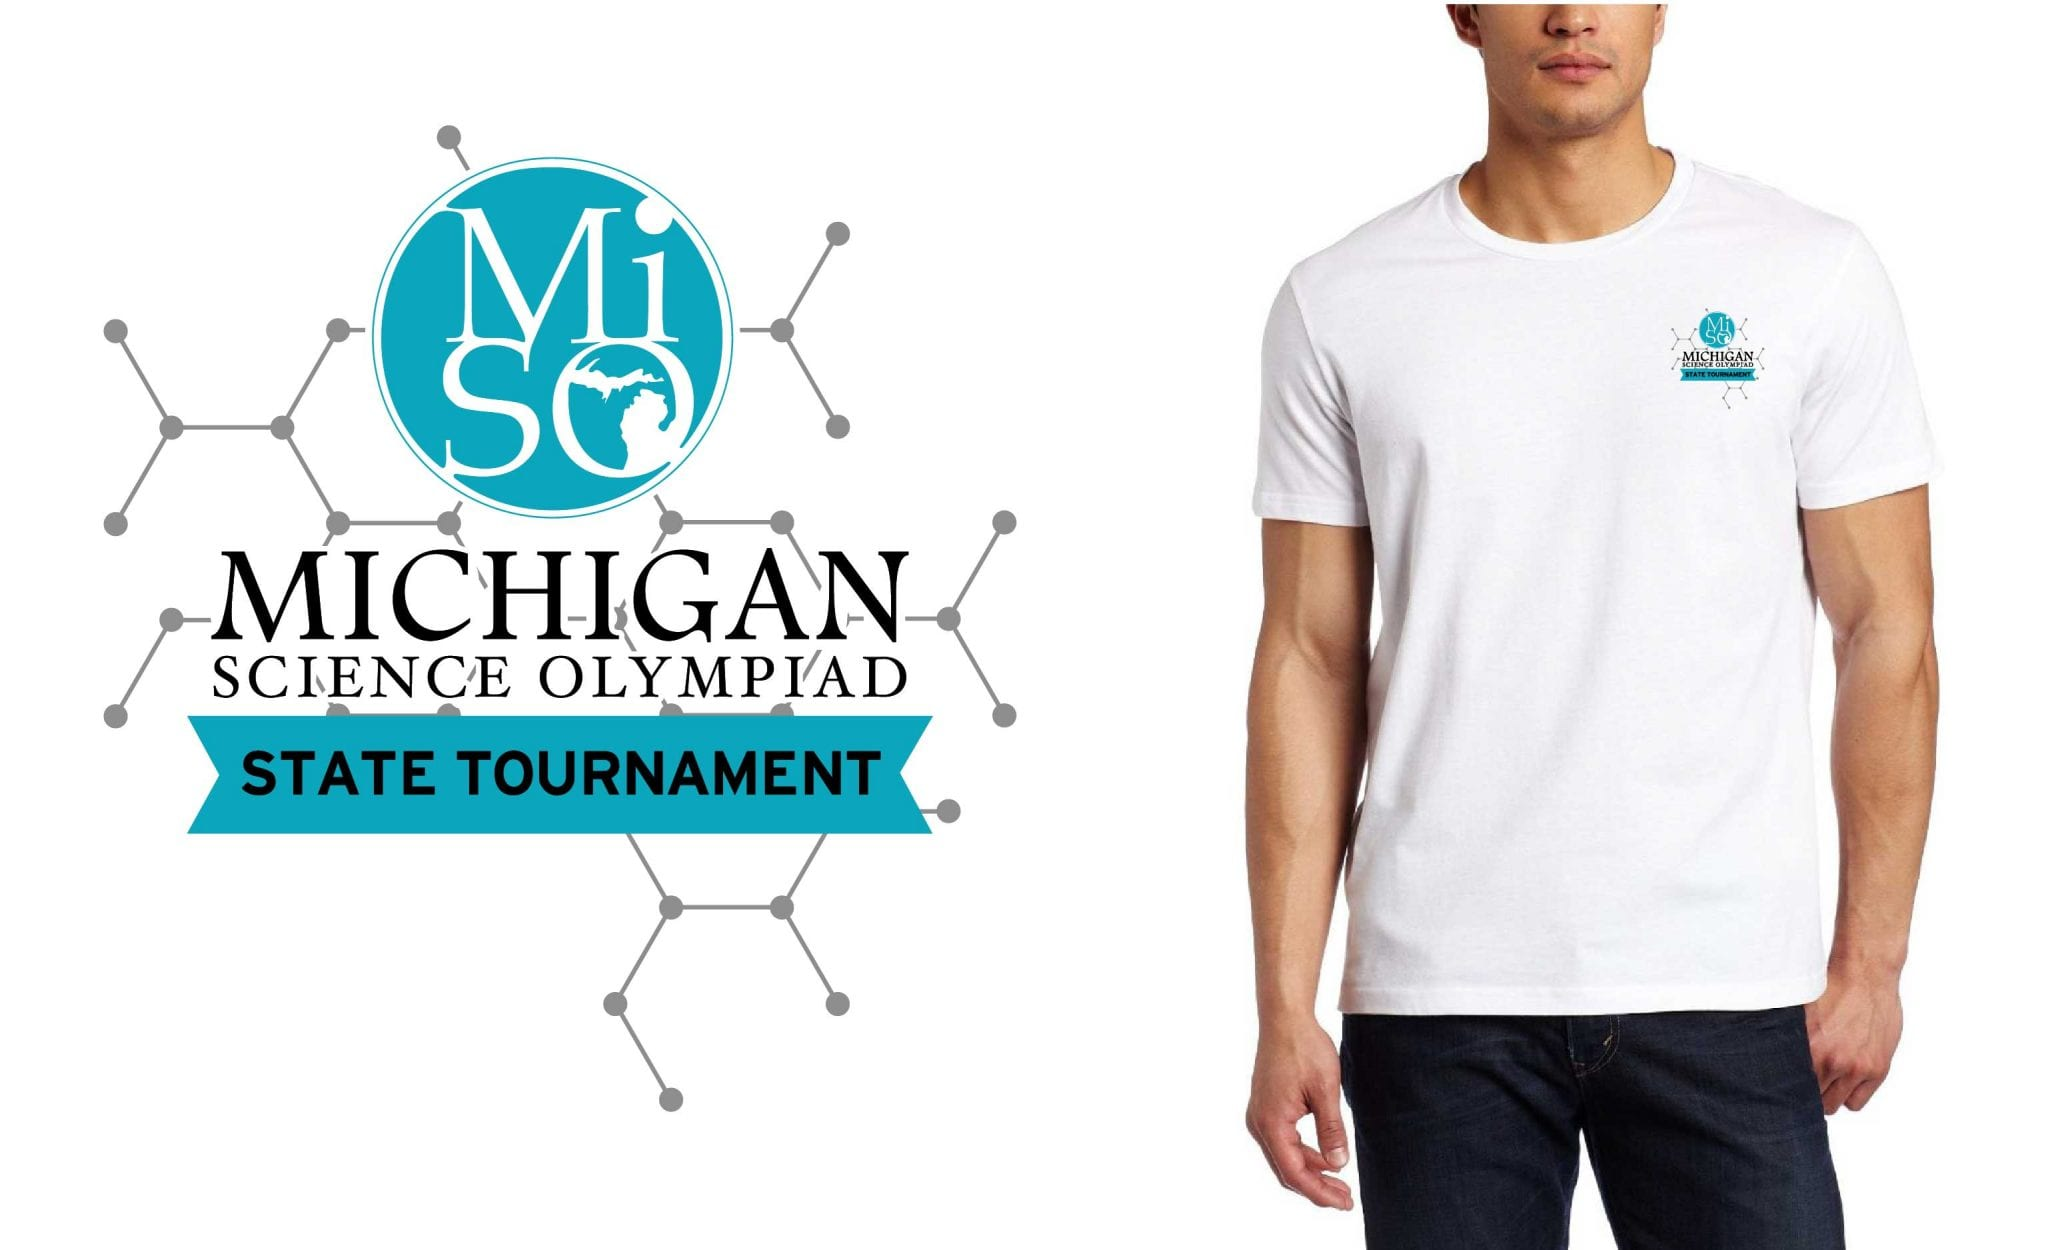 2015 Michigan Science Olympiad State Tournament  SUPERVISOR PRINT READY UPDATED